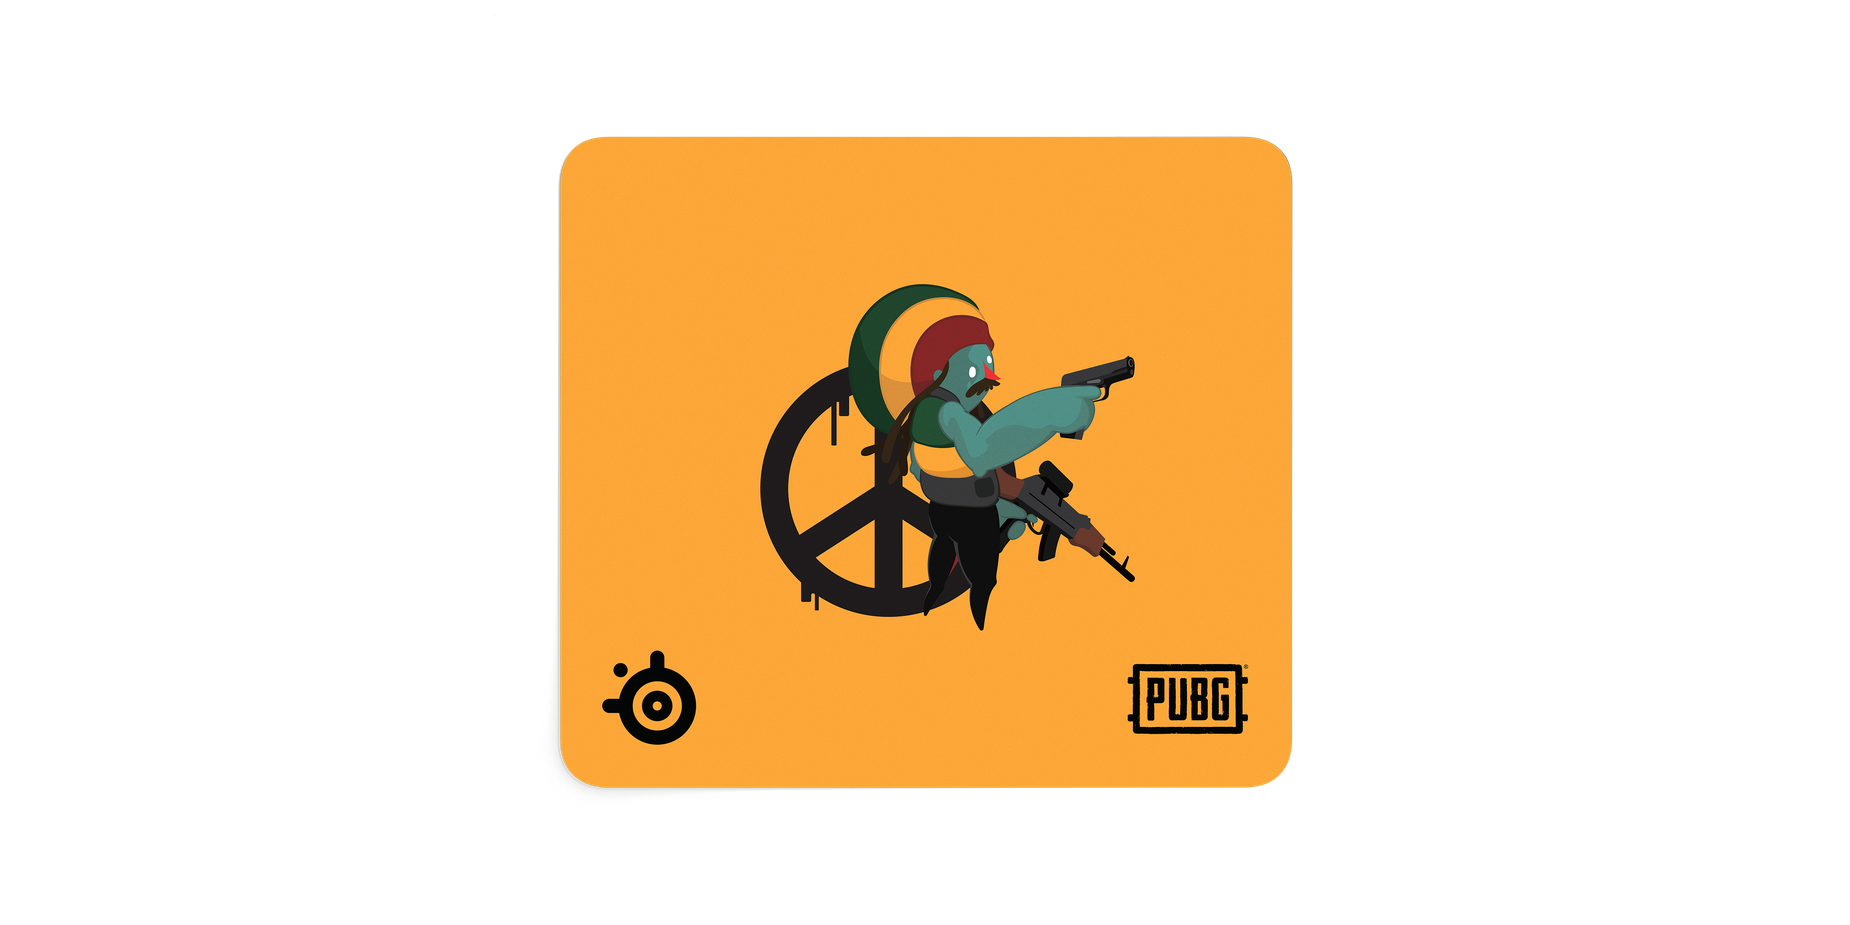 Image of a mousepad with an illustrated character, holding two guns and standing in front of a peace sign.